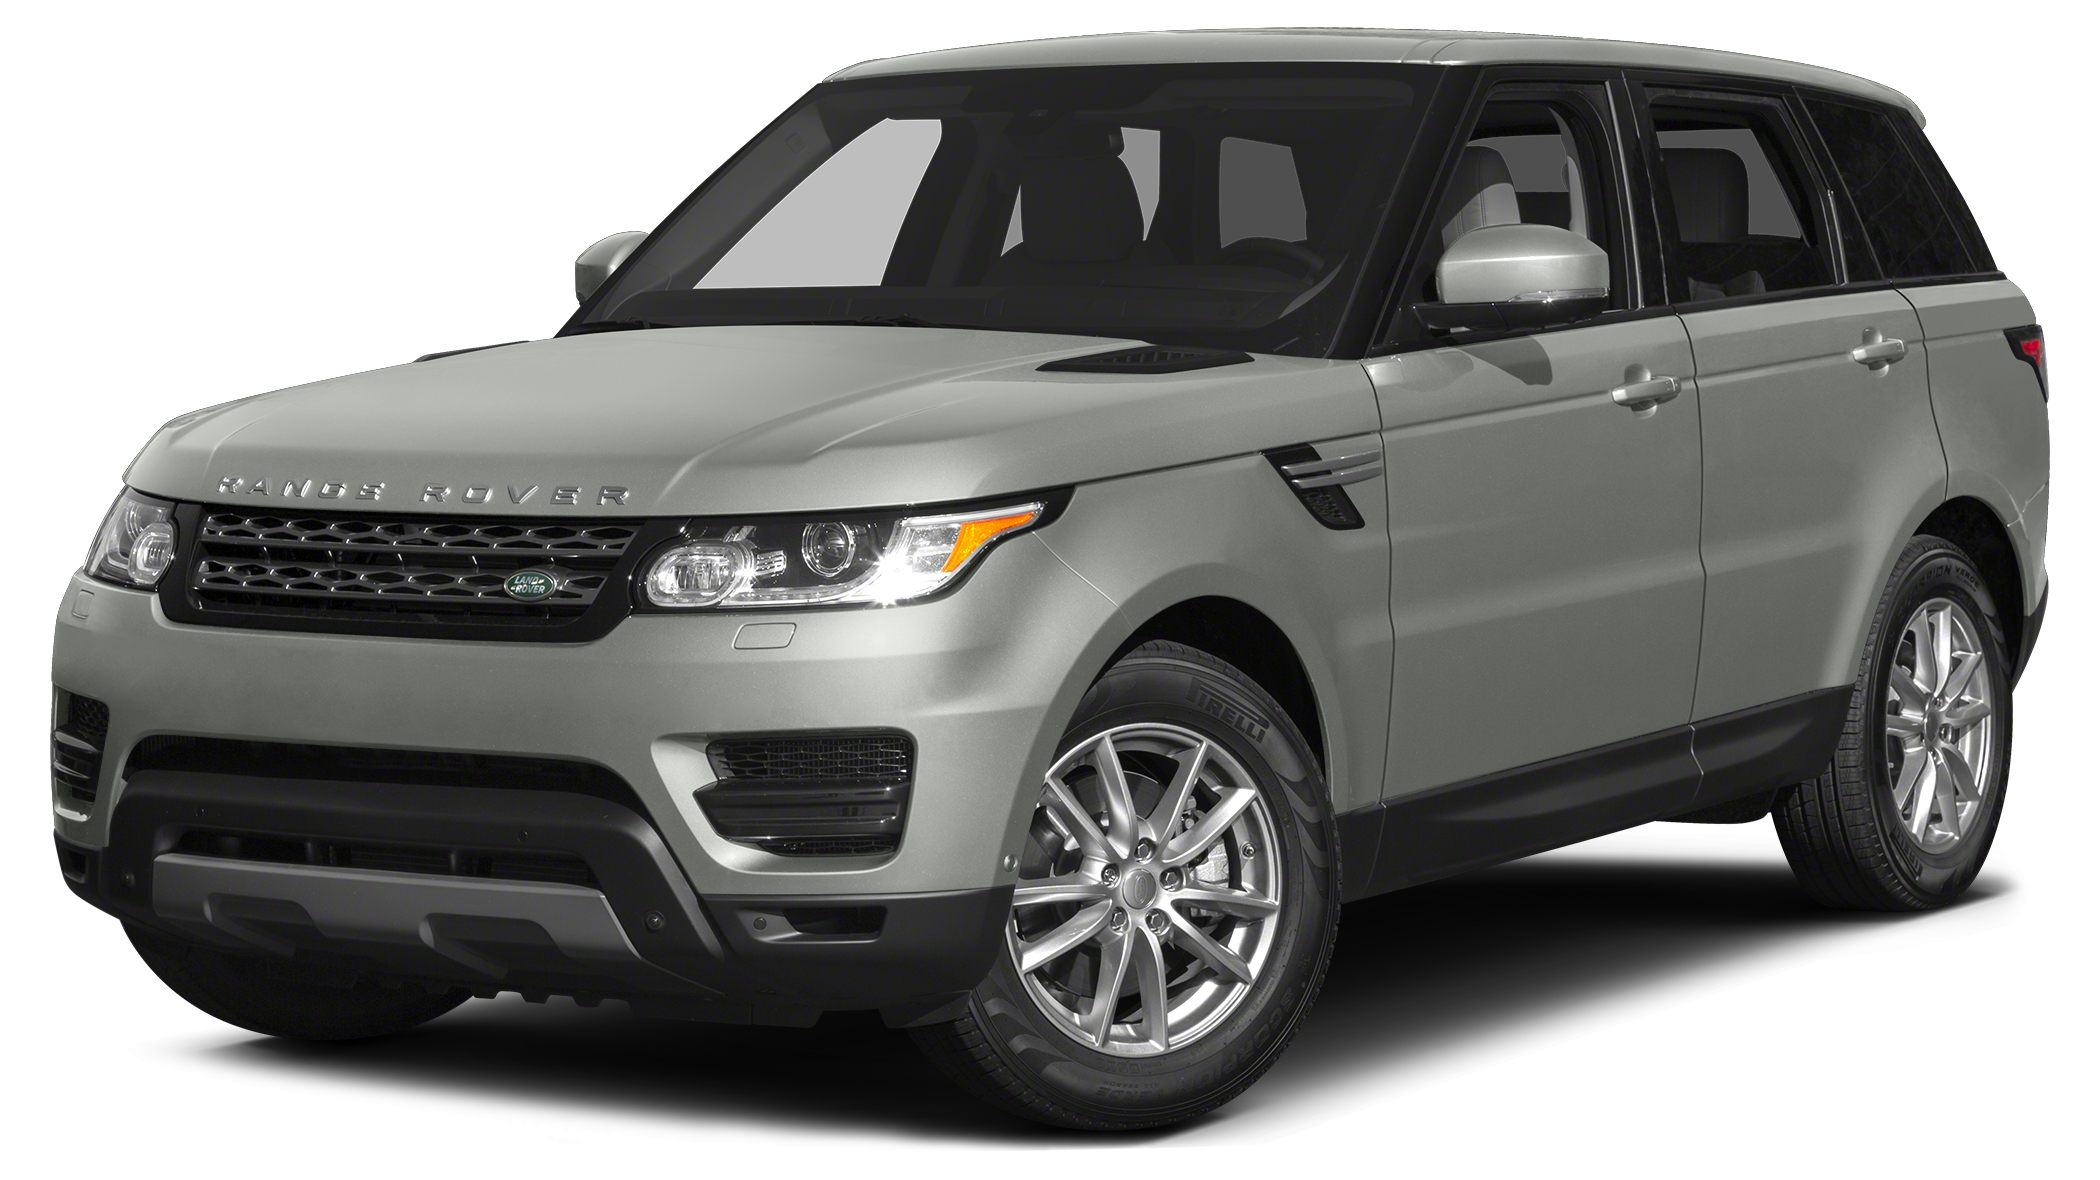 2015 Land Rover Range Rover Sport 30 Supercharged HSE Miles 5612Color Indus Silver Stock TA61